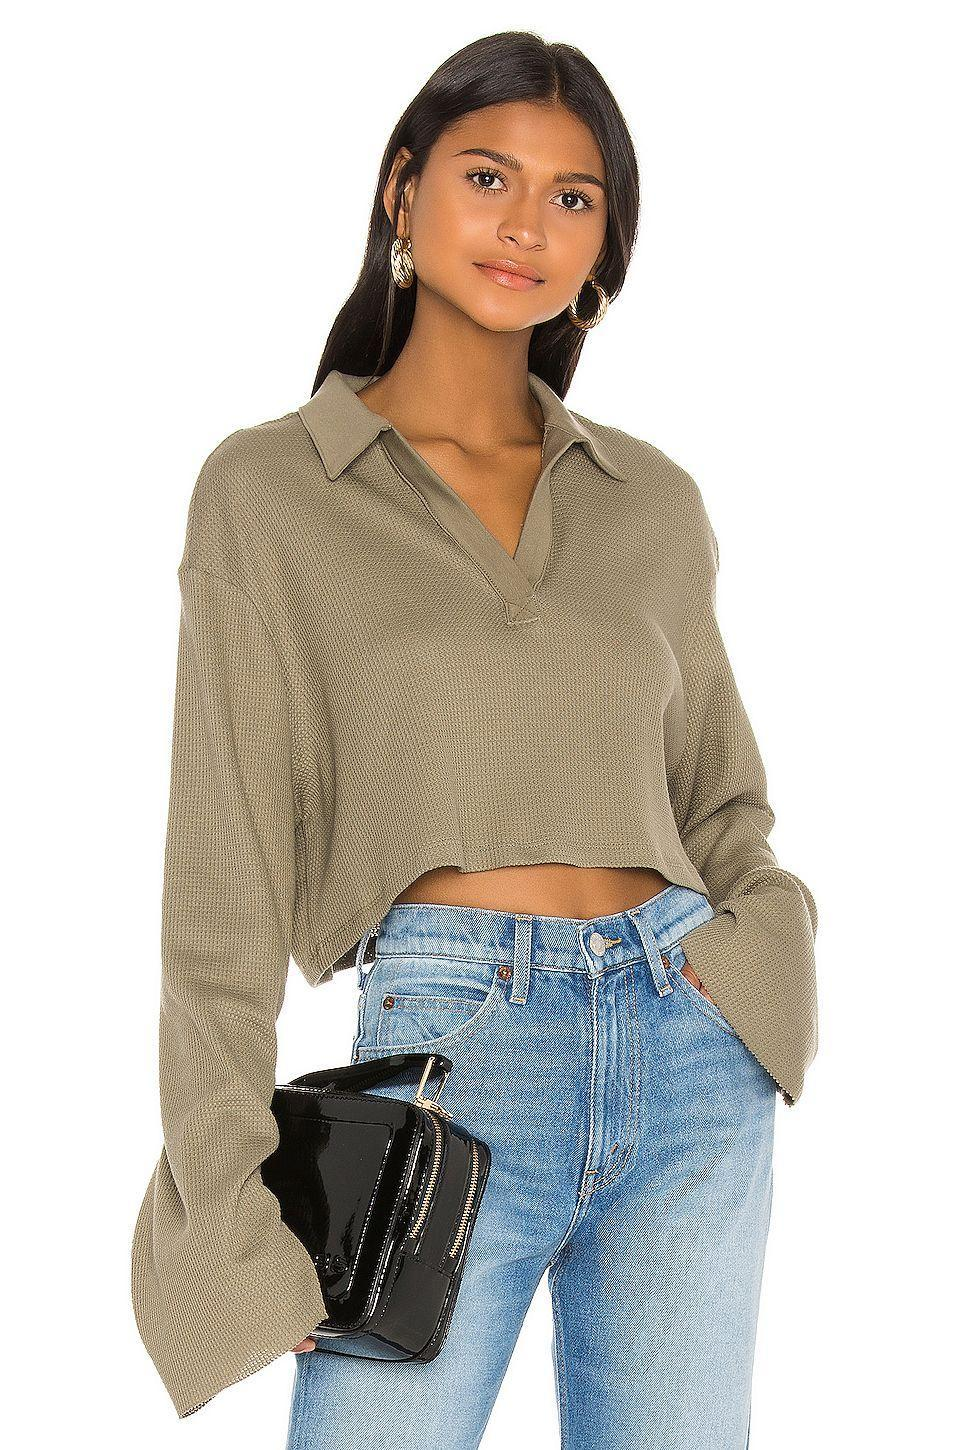 """<p><strong>The Range</strong></p><p>revolve.com</p><p><strong>$165.00</strong></p><p><a href=""""https://go.redirectingat.com?id=74968X1596630&url=https%3A%2F%2Fwww.revolve.com%2Fdp%2FTHRA-WS18%2F&sref=https%3A%2F%2Fwww.cosmopolitan.com%2Fstyle-beauty%2Ffashion%2Fg34043357%2Fzoom-work-from-home-fashion%2F"""" rel=""""nofollow noopener"""" target=""""_blank"""" data-ylk=""""slk:Shop Now"""" class=""""link rapid-noclick-resp"""">Shop Now</a></p><p>Looked elevated but feel comfy in this slouchy soft polo sweater. Throw on some gold hoops and jeans (or leggings, honestly) and you're WFH chic. </p>"""